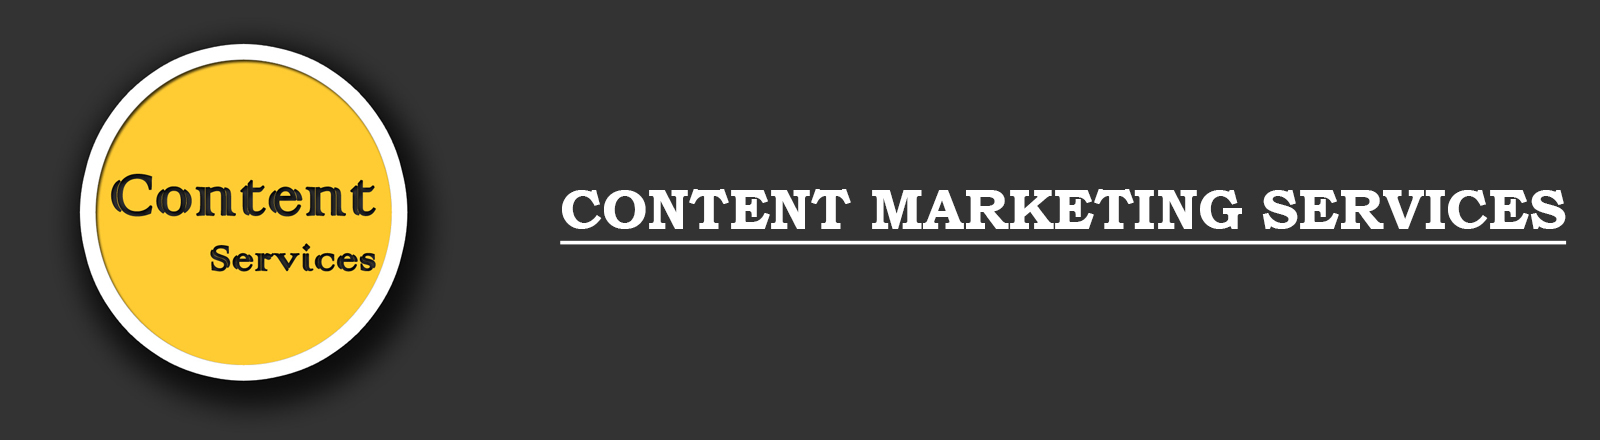 content marketing services by TheSEOGuy